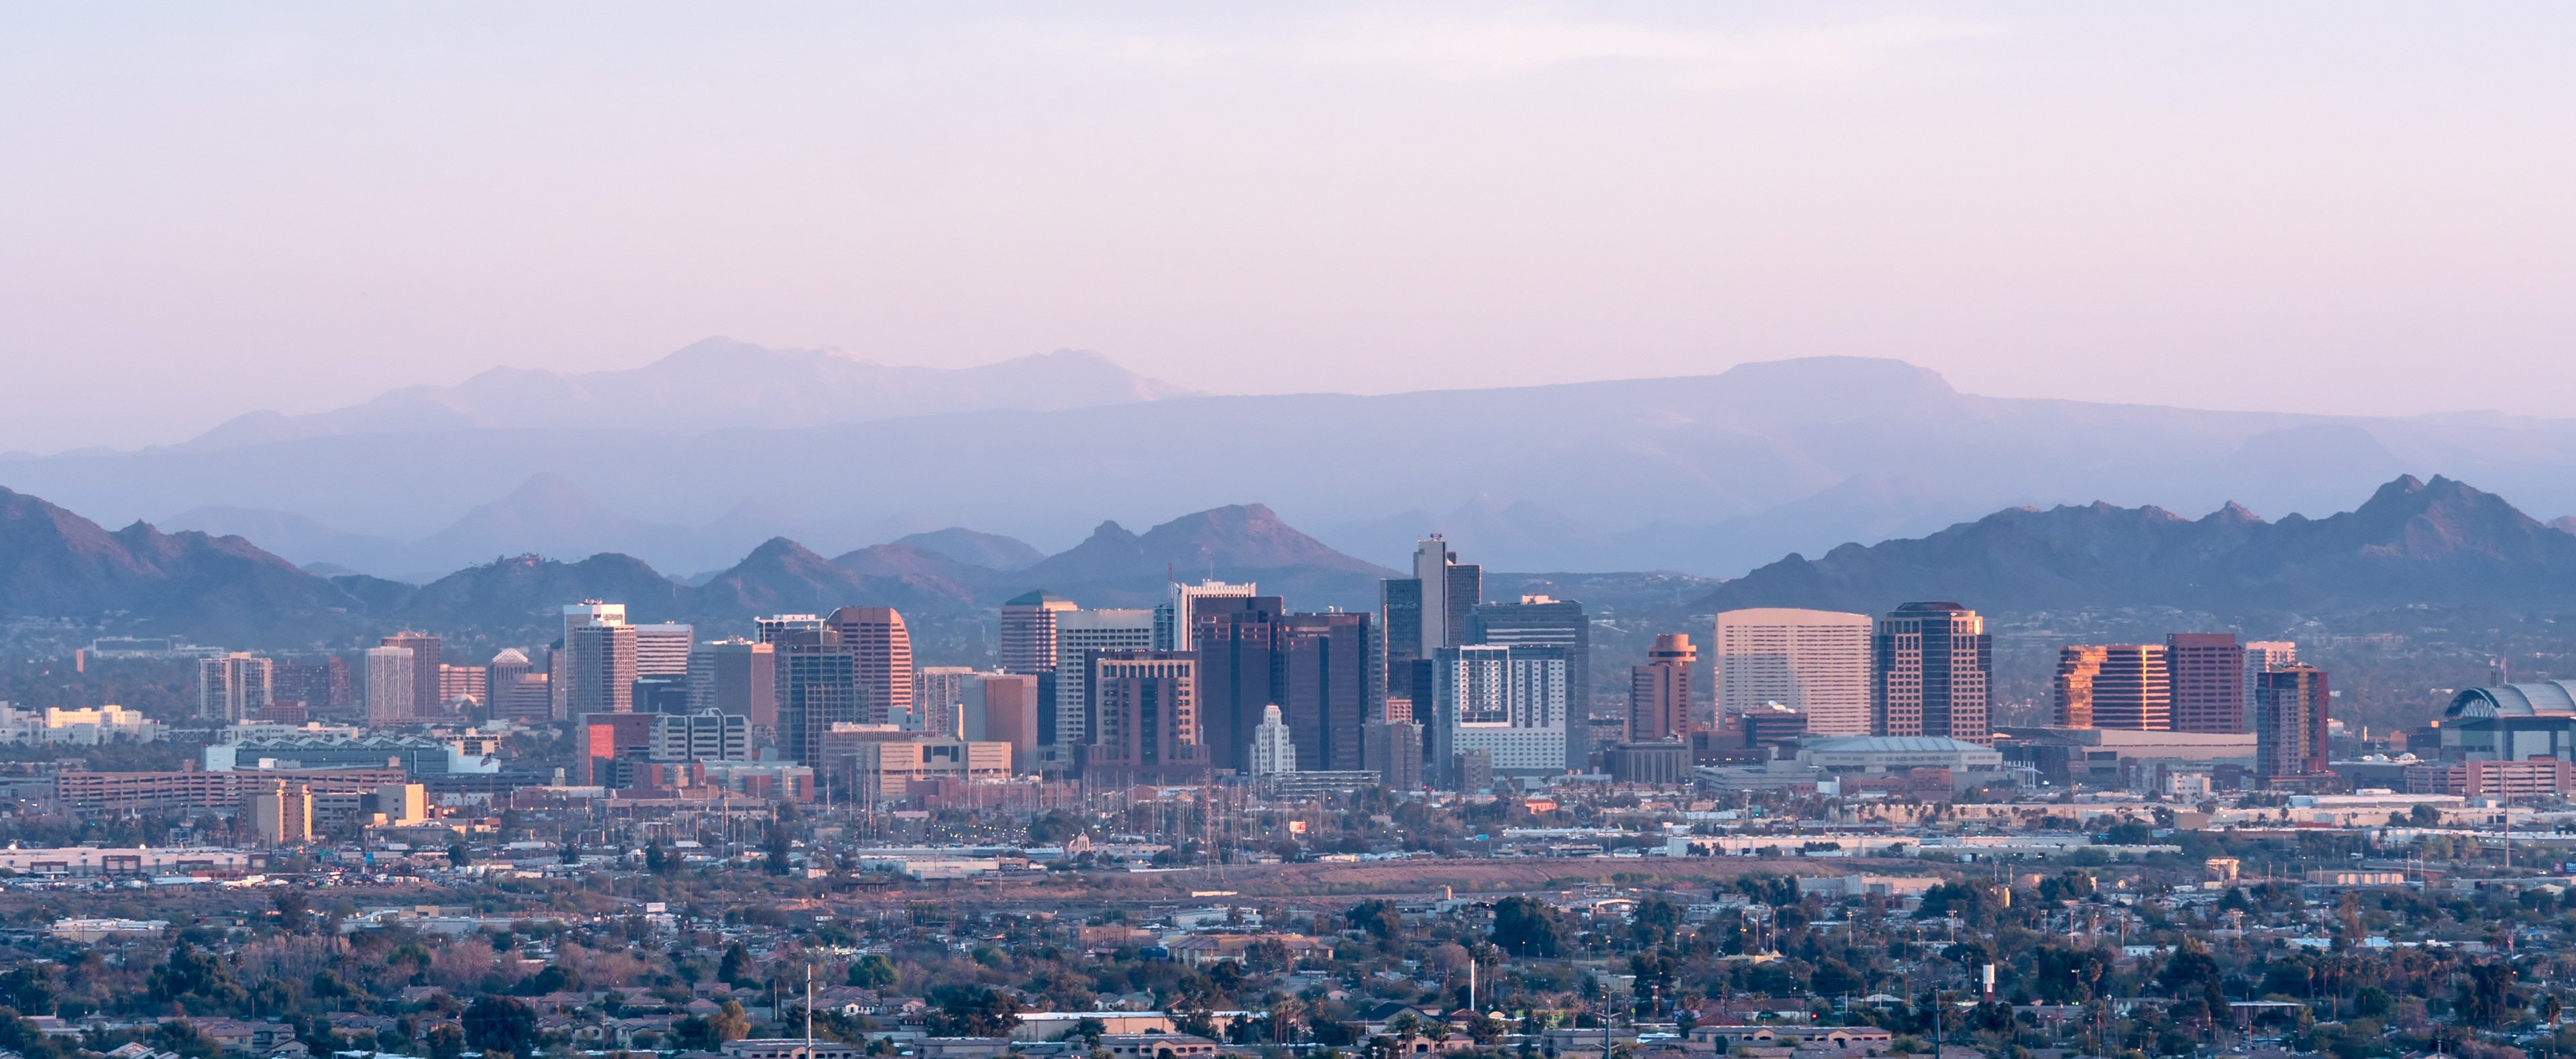 phoenix during day